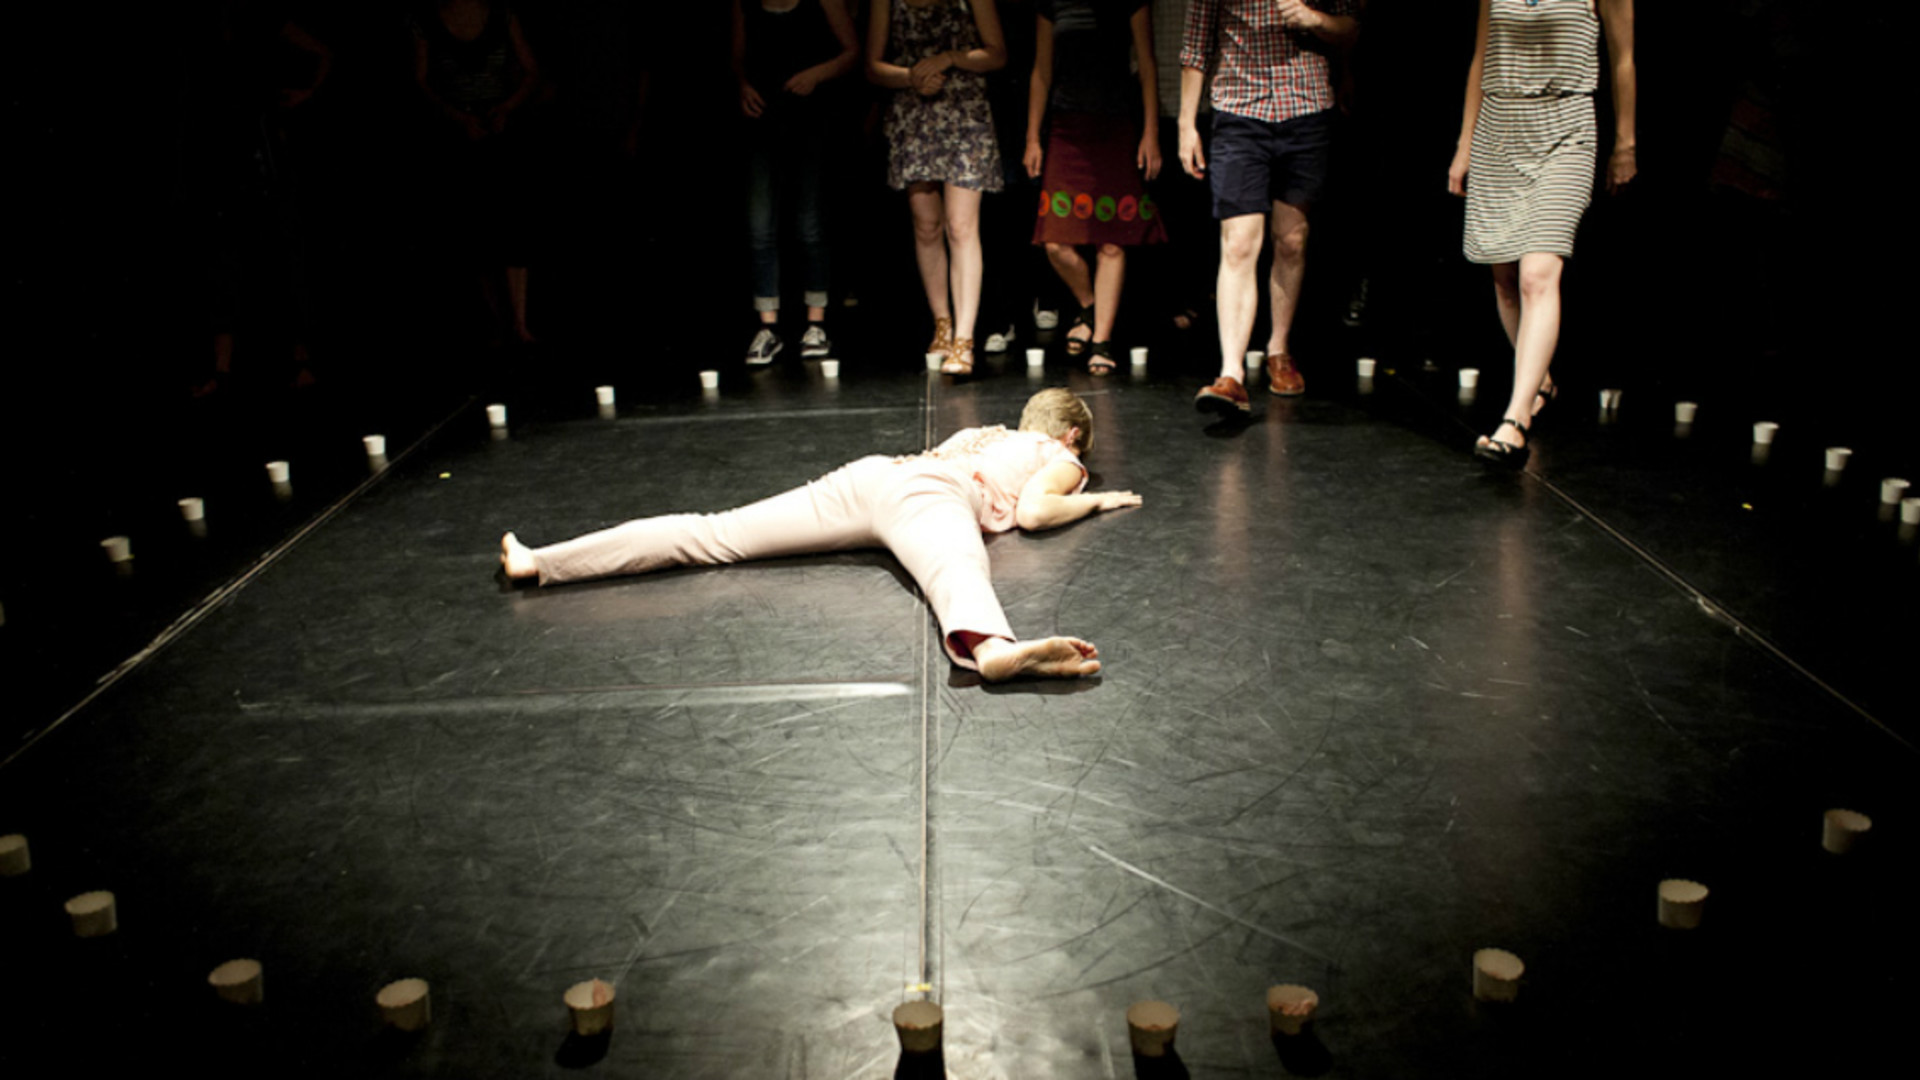 A dancer lies face down on a black floor in a spotlight surrounded by a ring of paper cups. The legs of four people are shown walking towards the dancer.